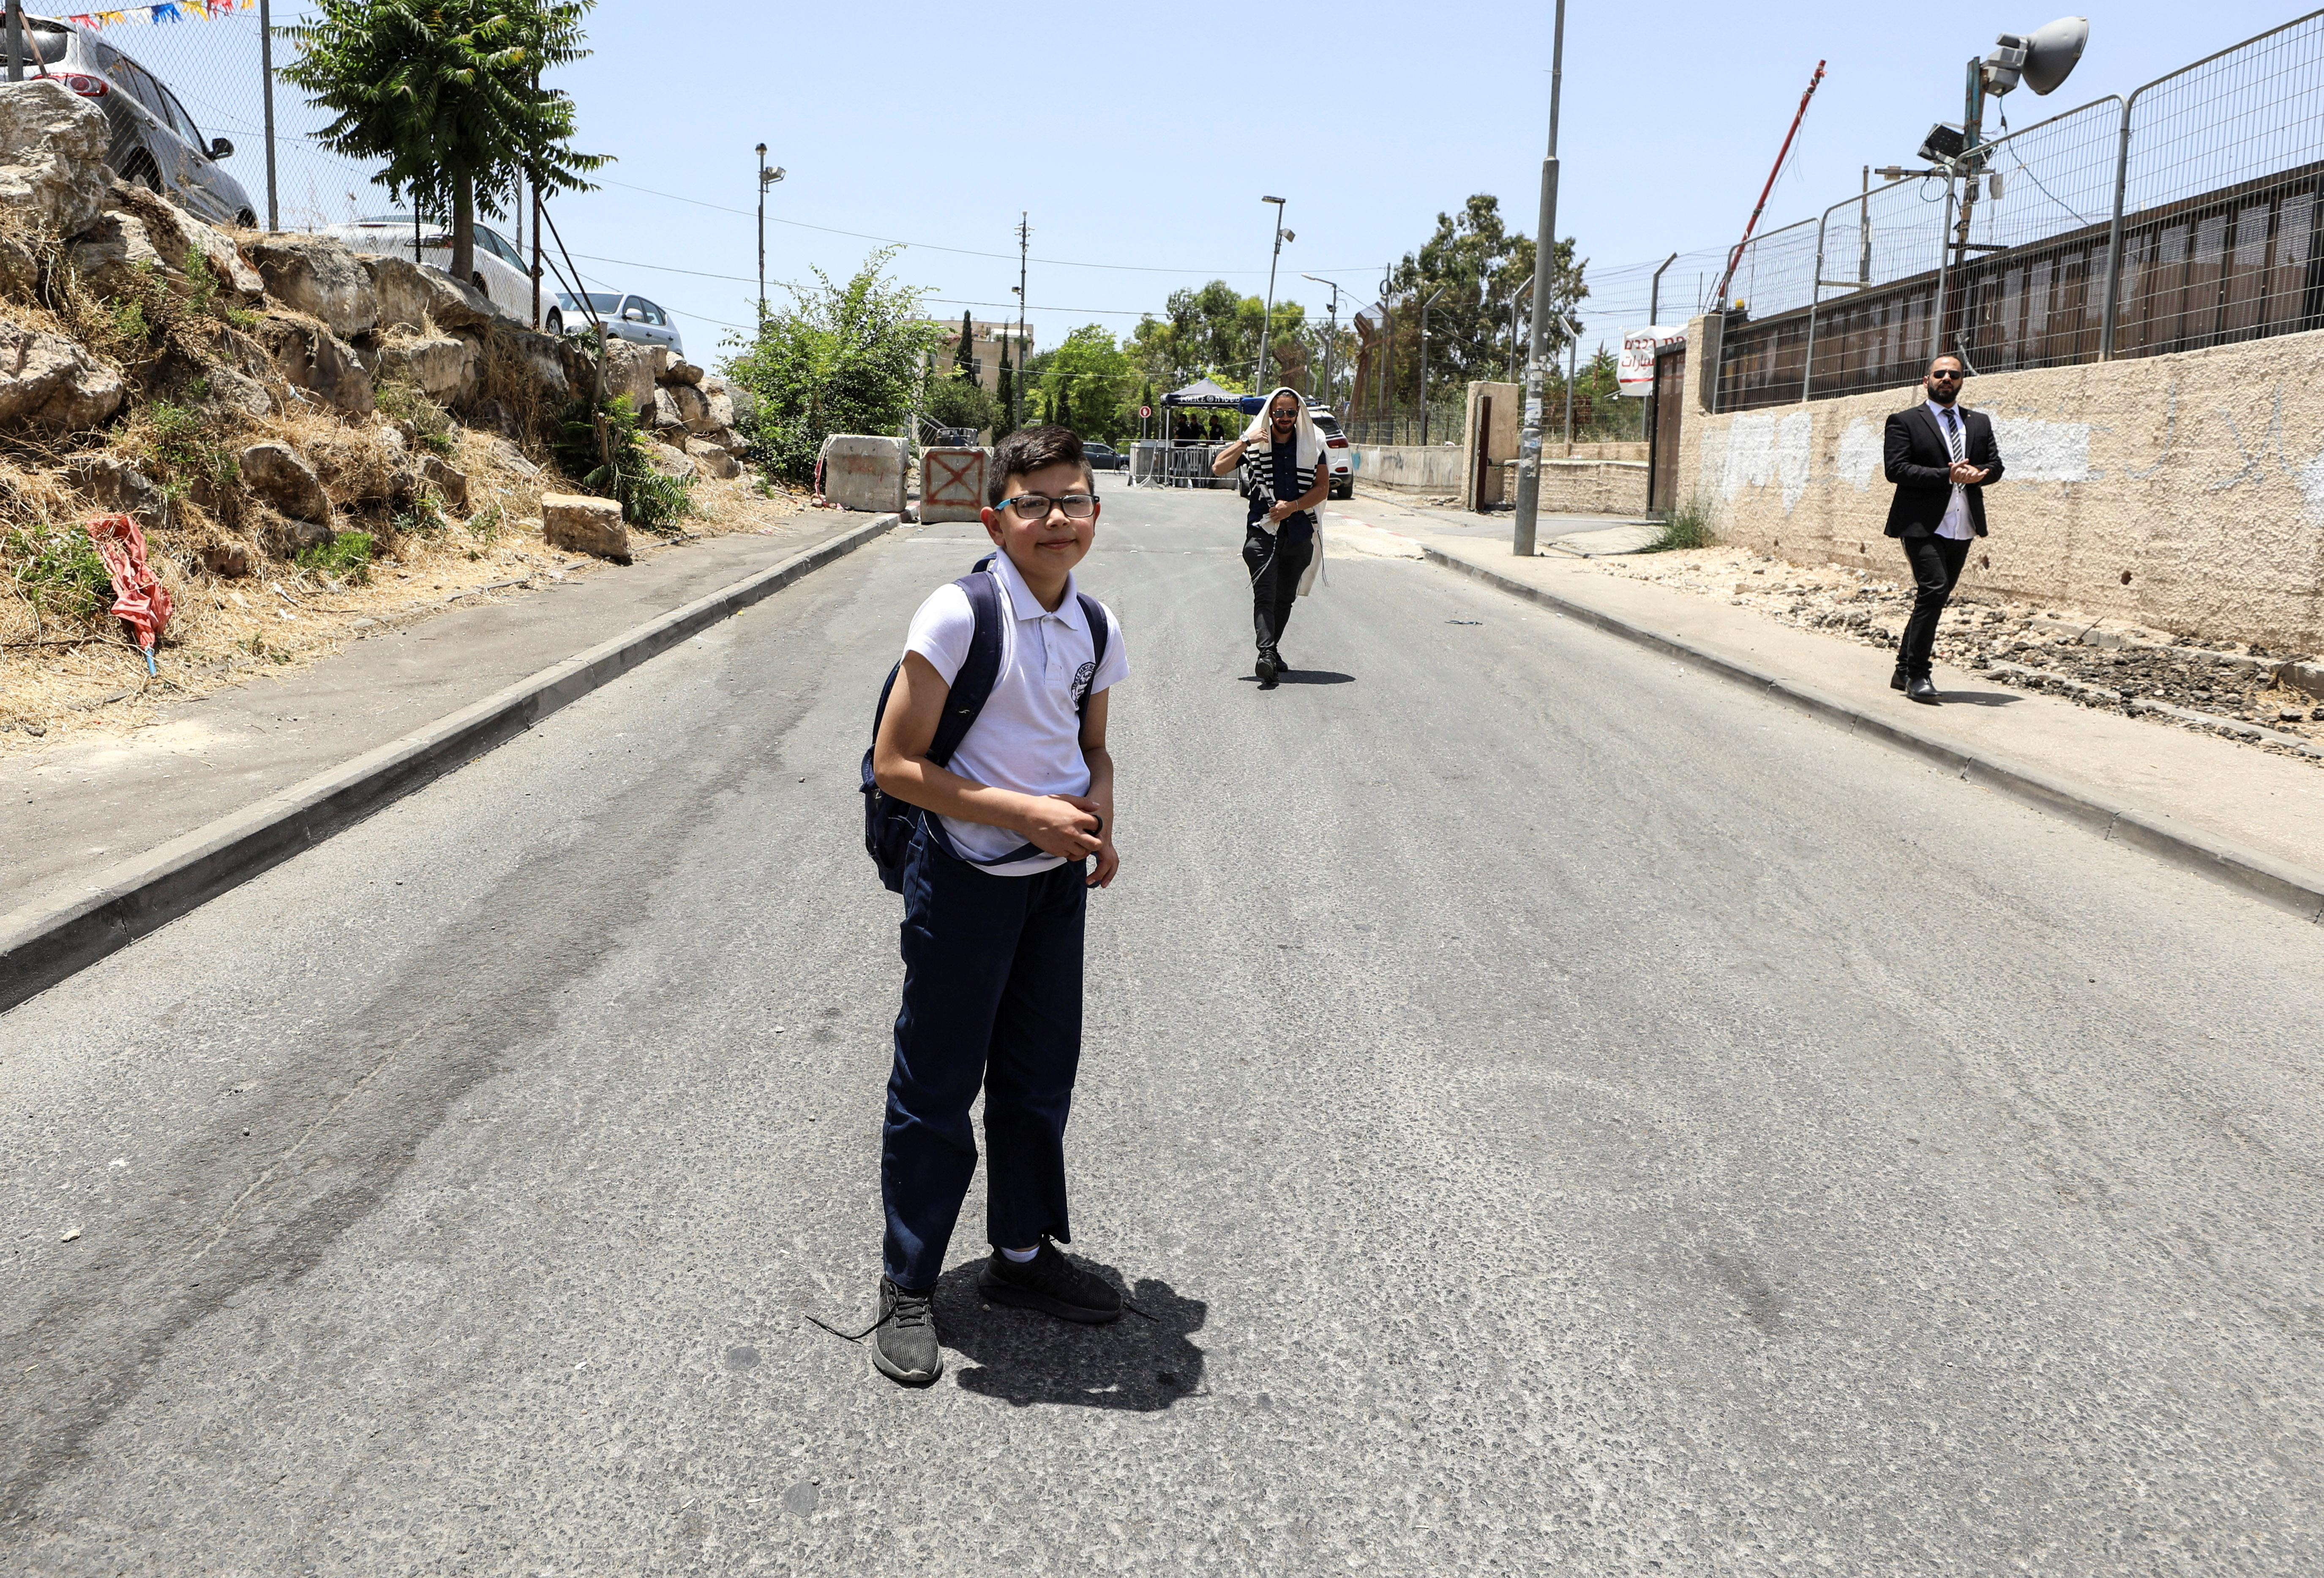 Ahmad, a member of the Abu Diab family, Palestinian residents of Sheikh Jarrah who face possible eviction after an Israeli court accepted Jewish settler land claims, stands in front of a Jewish man, as he makes his way home from school in his neighbourhood in East Jerusalem June 12, 2021. Picture taken June 12, 2021. REUTERS/Ammar Awad